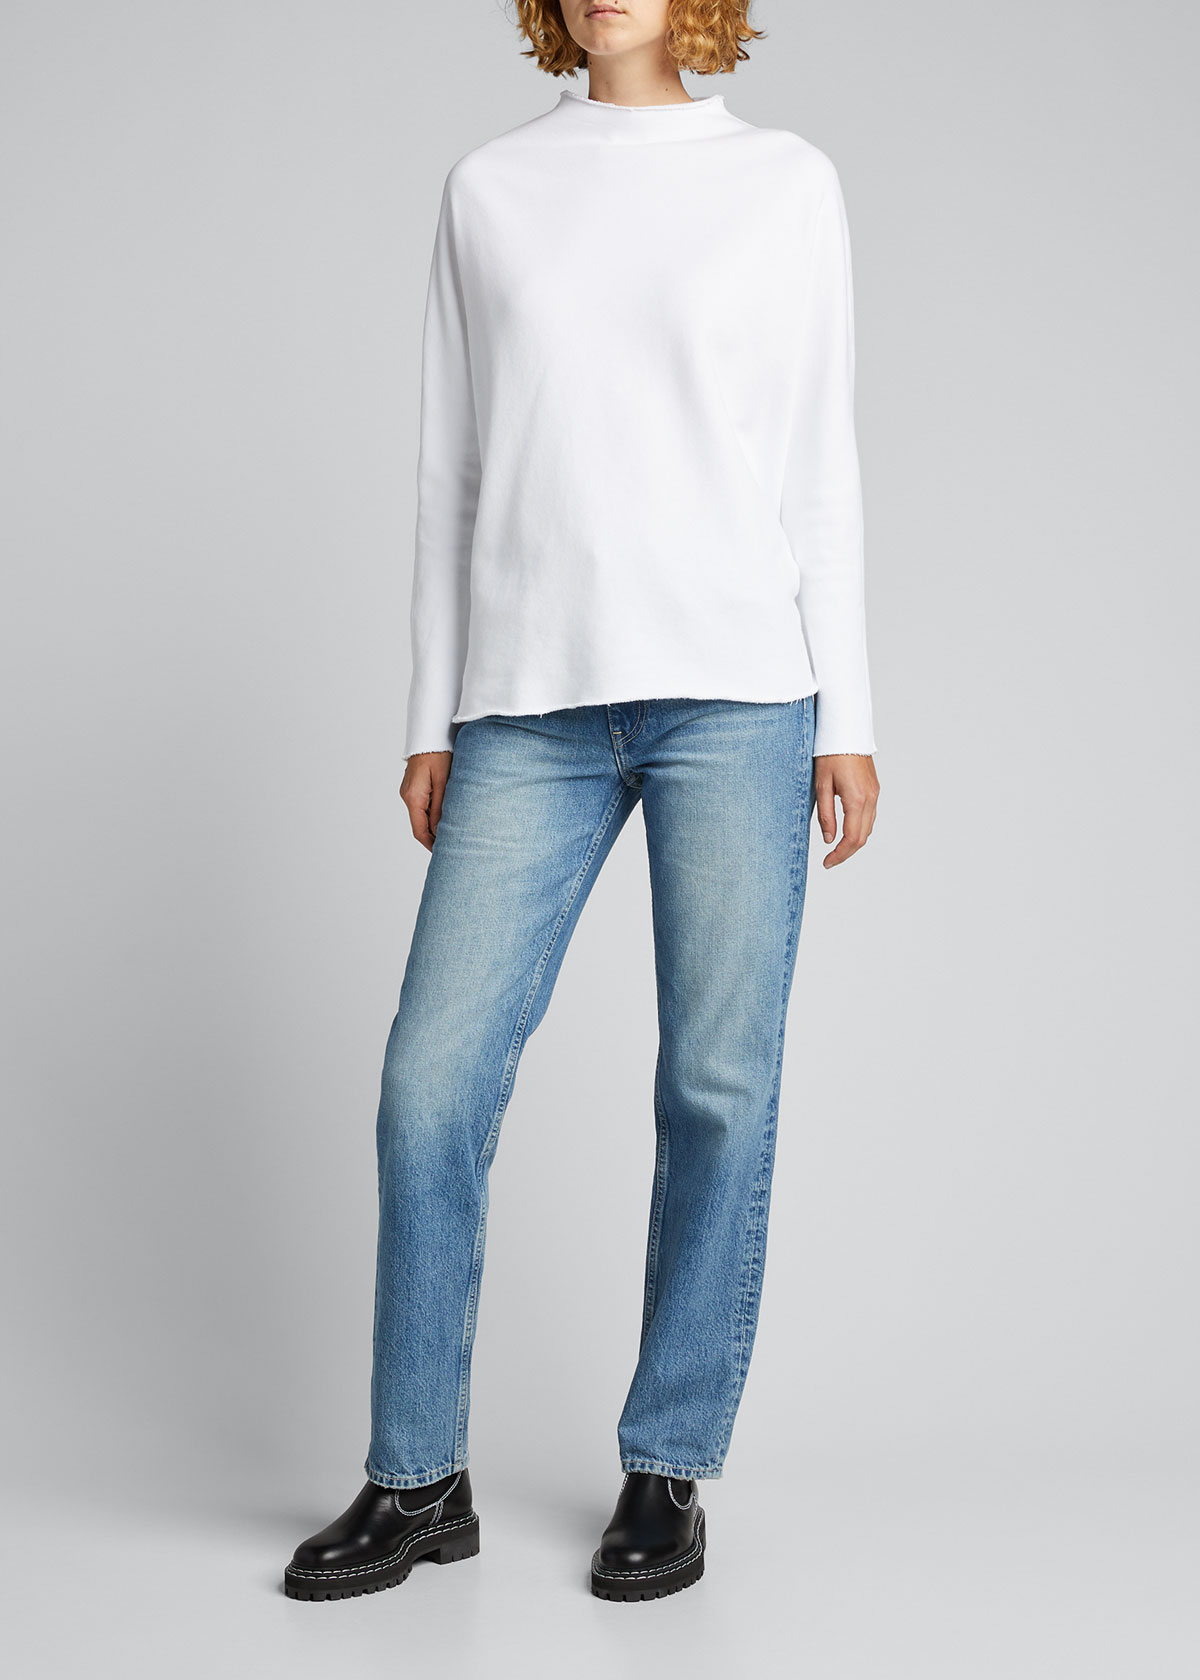 Frank & Eileen Tee Lab LONG-SLEEVE FUNNEL-NECK CAPELET TOP